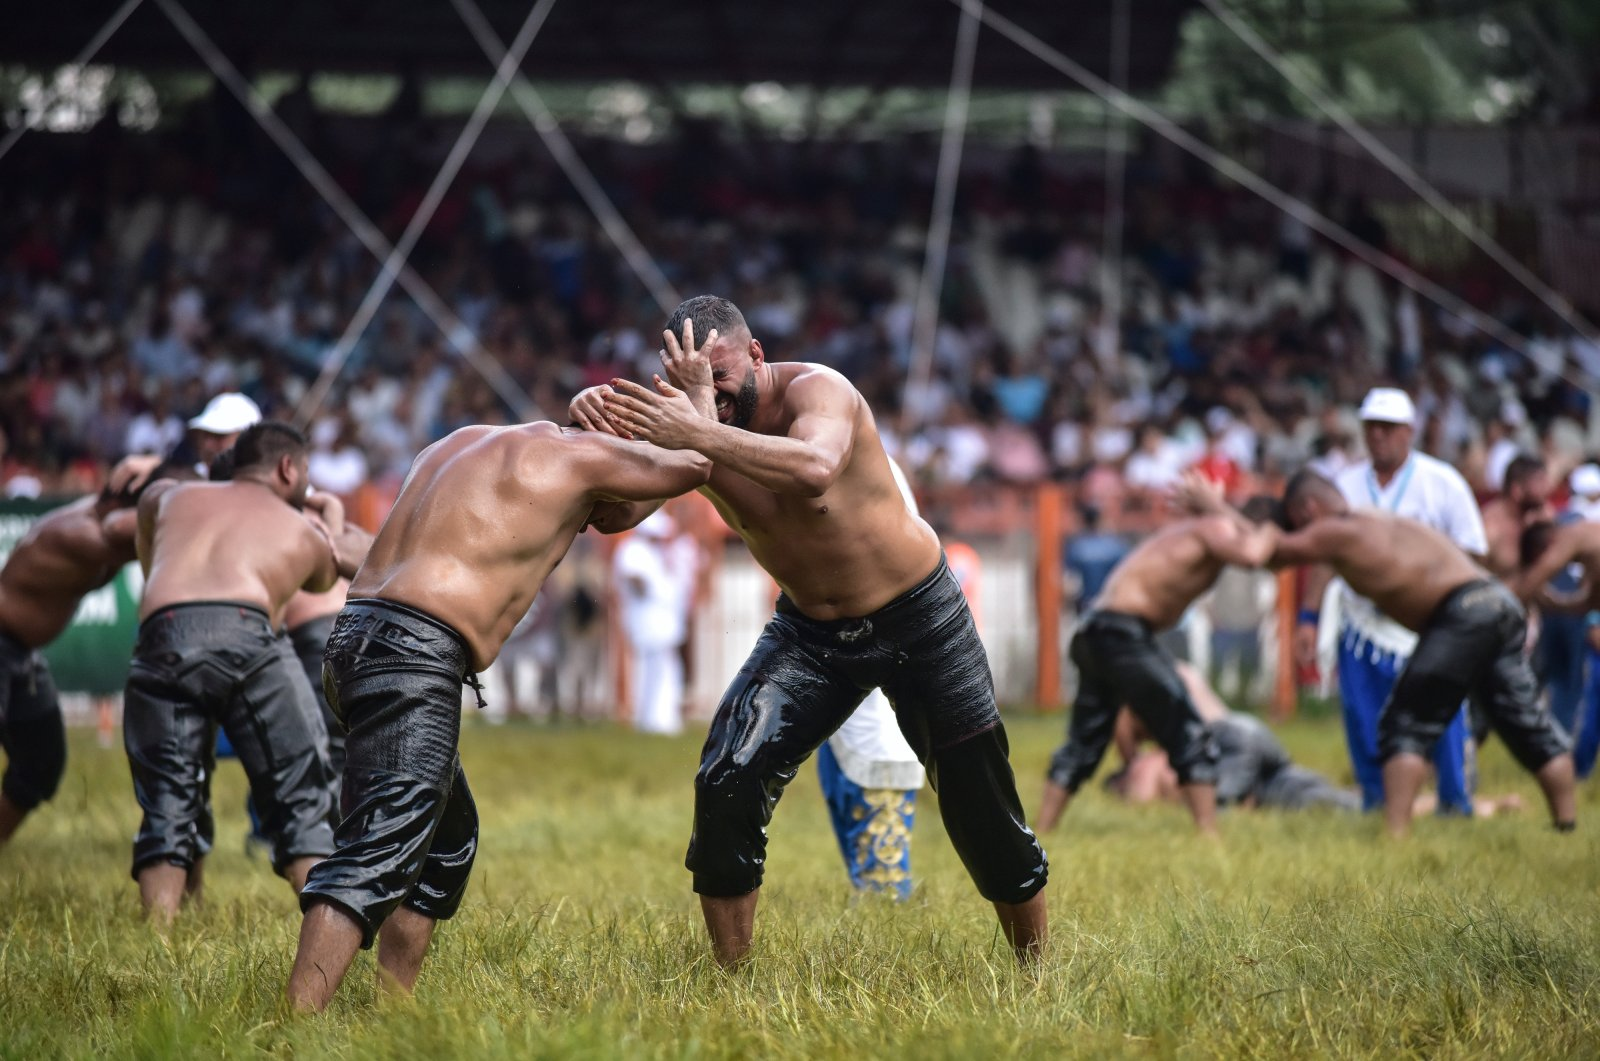 Two oil wrestlers are seen during a match held as part of the 658th Kırkpınar Oil Wrestling tournament at the Sarayiçi wrestling stadium, Edirne, Turkey, July 8, 2019. (DHA Photo).